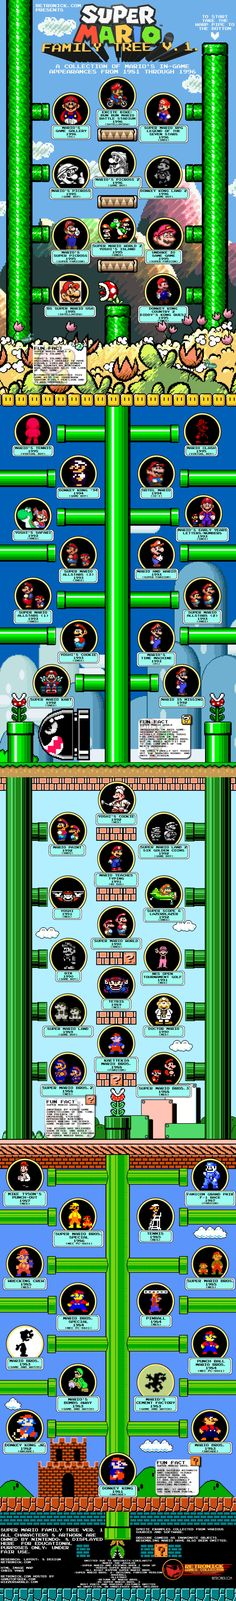 The Mario Family tree (part 1). Mario kart > Yoshi's Island > Everything else.